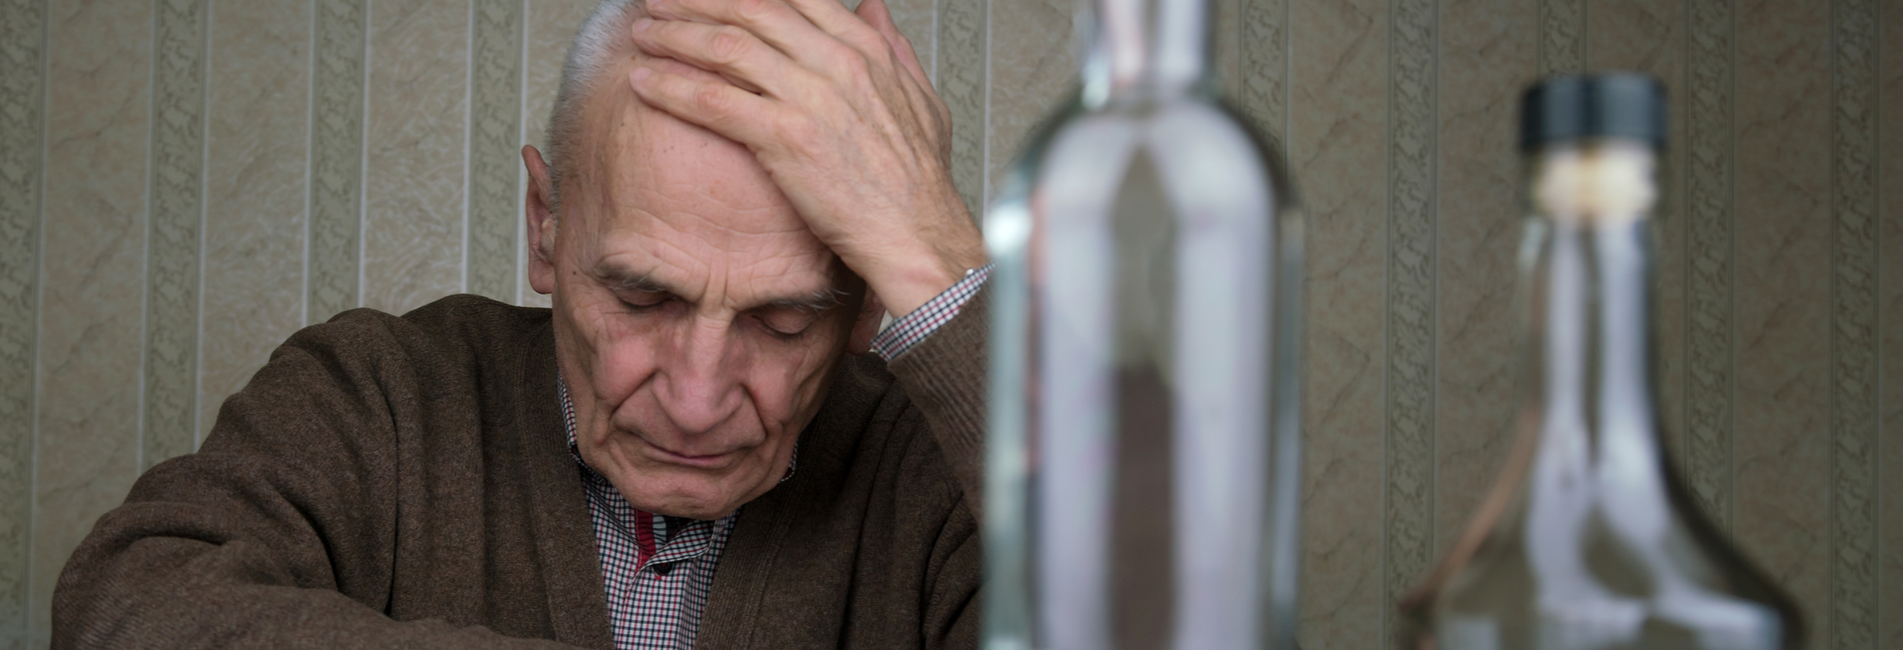 Addiction Treatment Steps for Those Struggling With Abuse - Resurgence - A depressed older man sits at his kitchen table with his hand to his head as he thinks about his need for addiction treatment steps to get clean from his alcohol abuse.